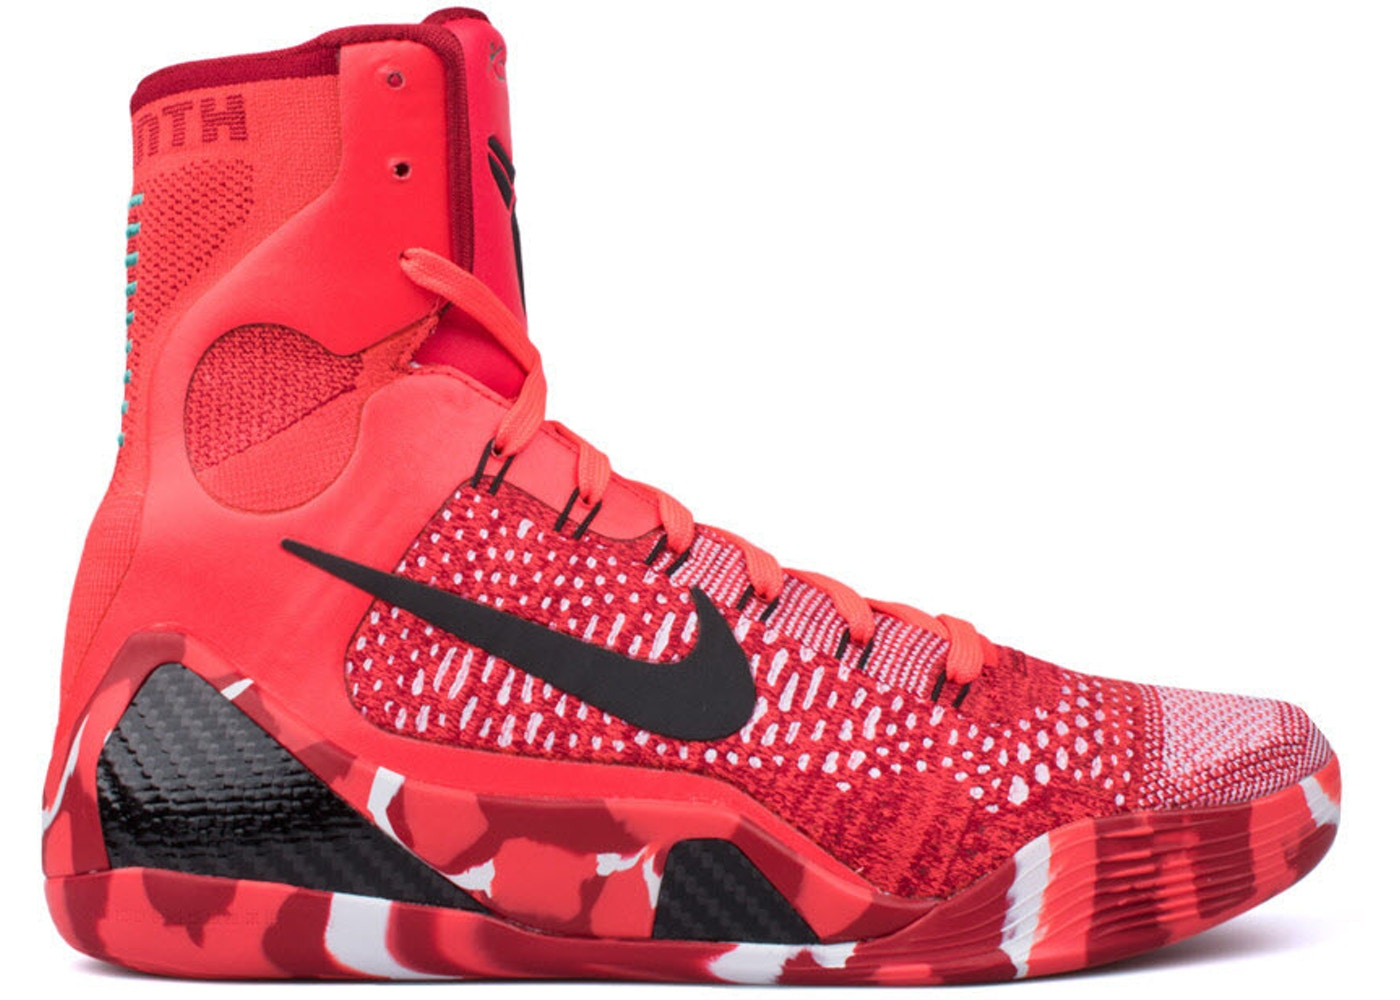 394318810f9 Nike Kobe 9 Shoes - Average Sale Price